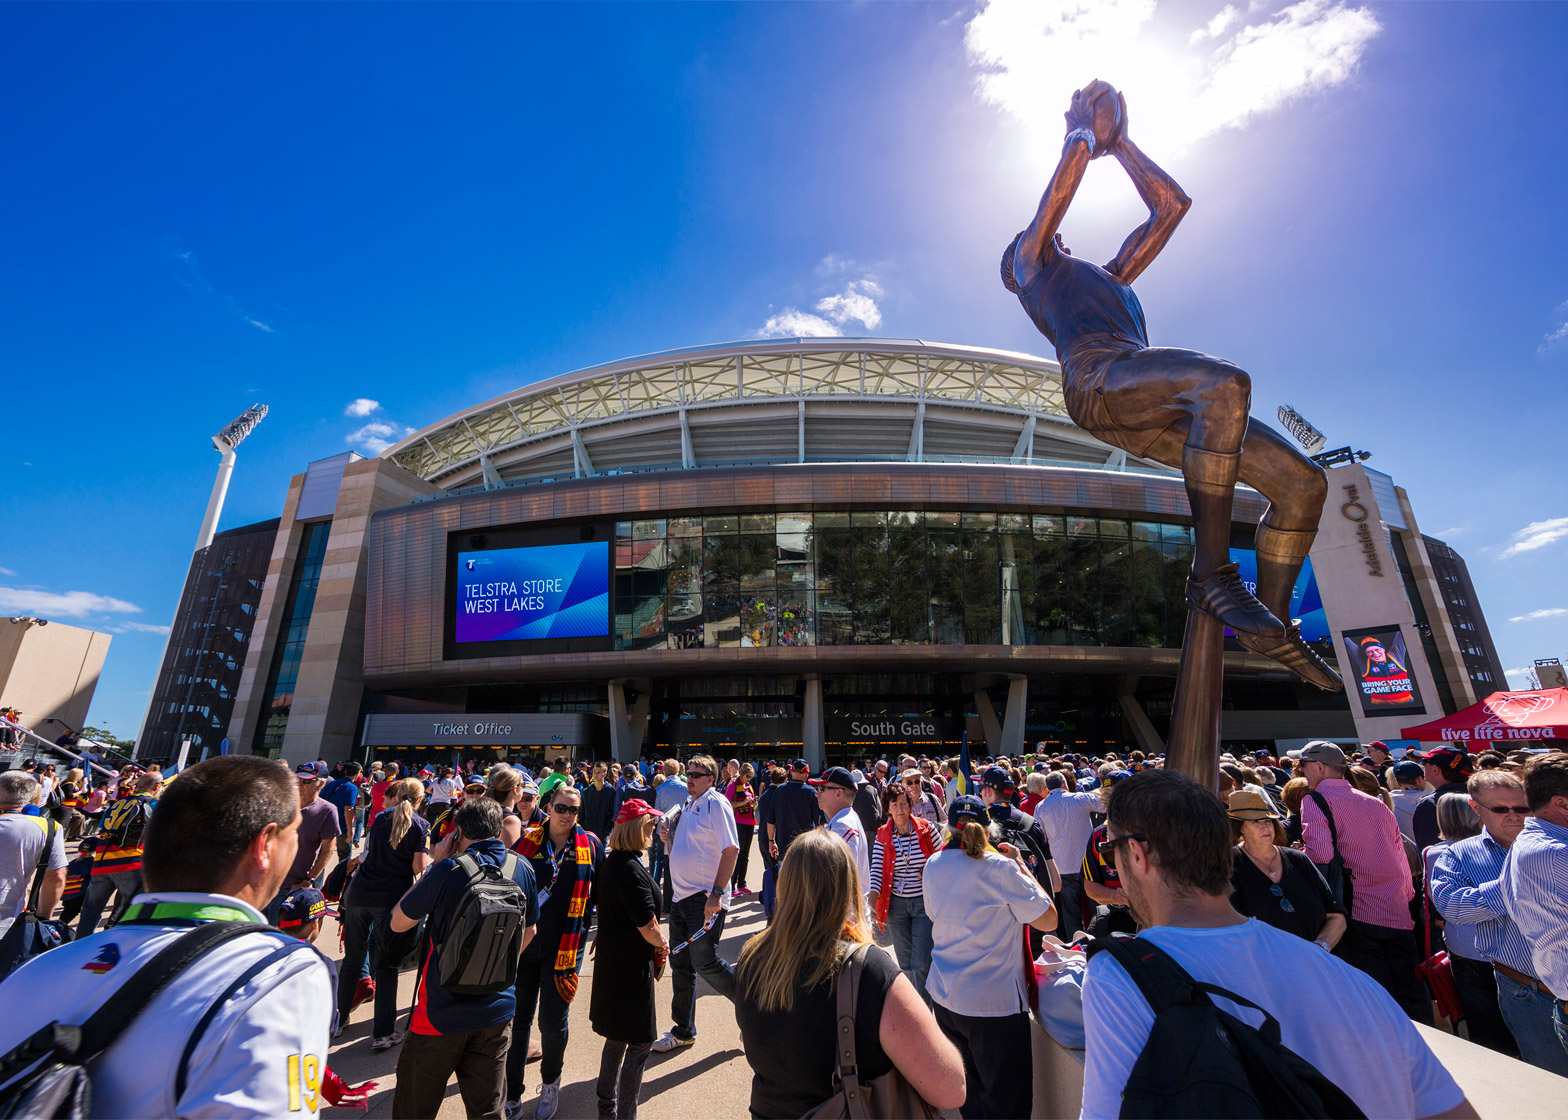 Adelaide Oval Redevelopment by Cox Architecture, Walter Brooke and Hames Sharley (SA)